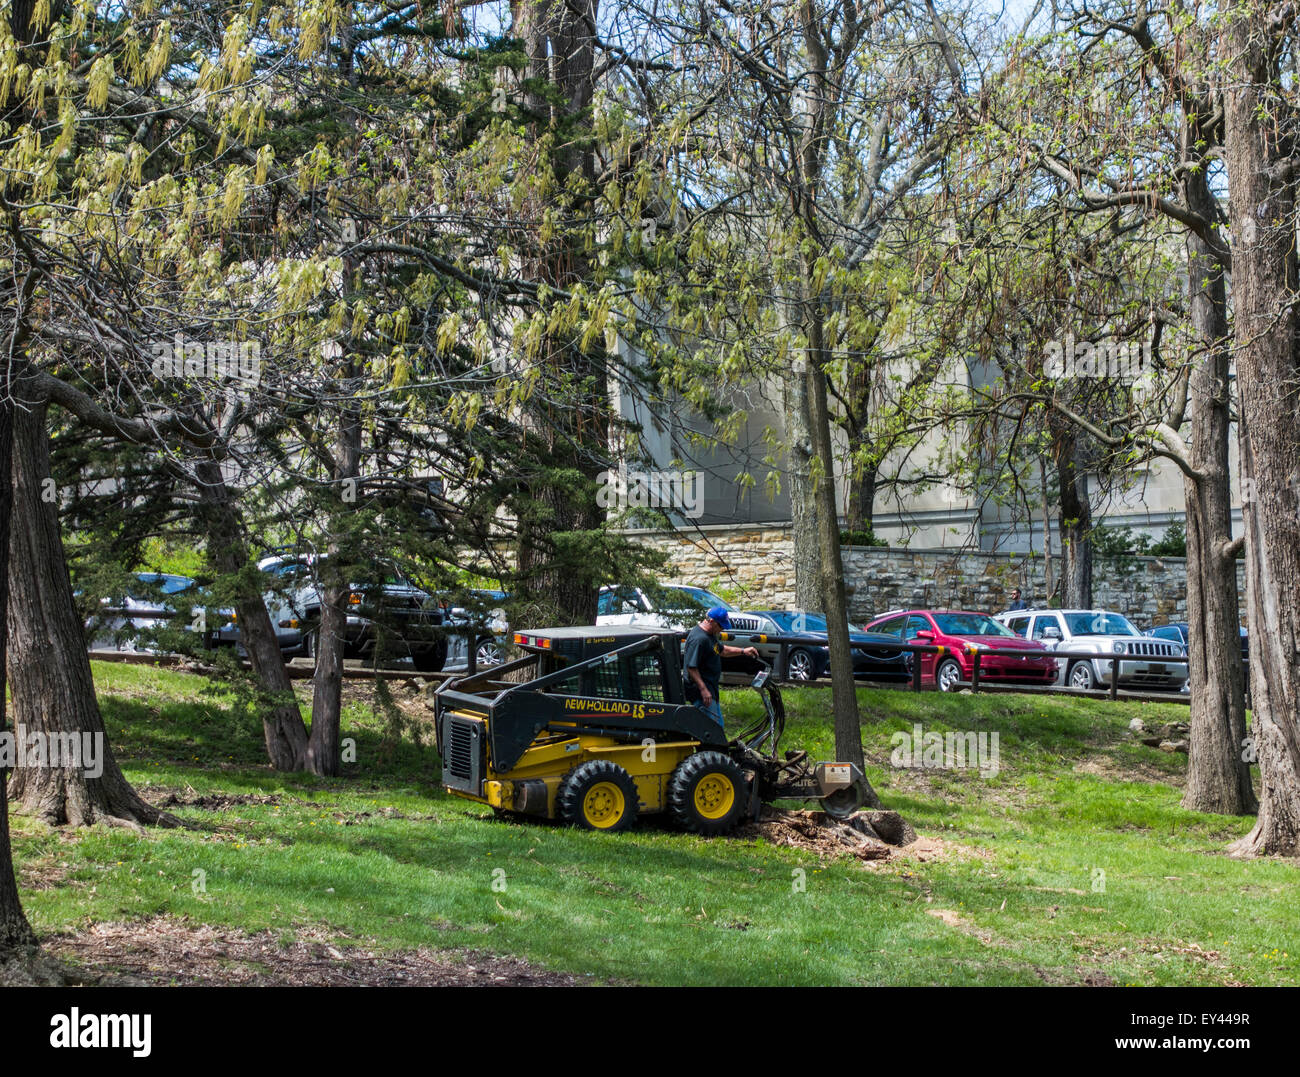 New Holland skid steer with log cutting attachment, Lawrence campus, Kansas University, Kansas, USA - Stock Image